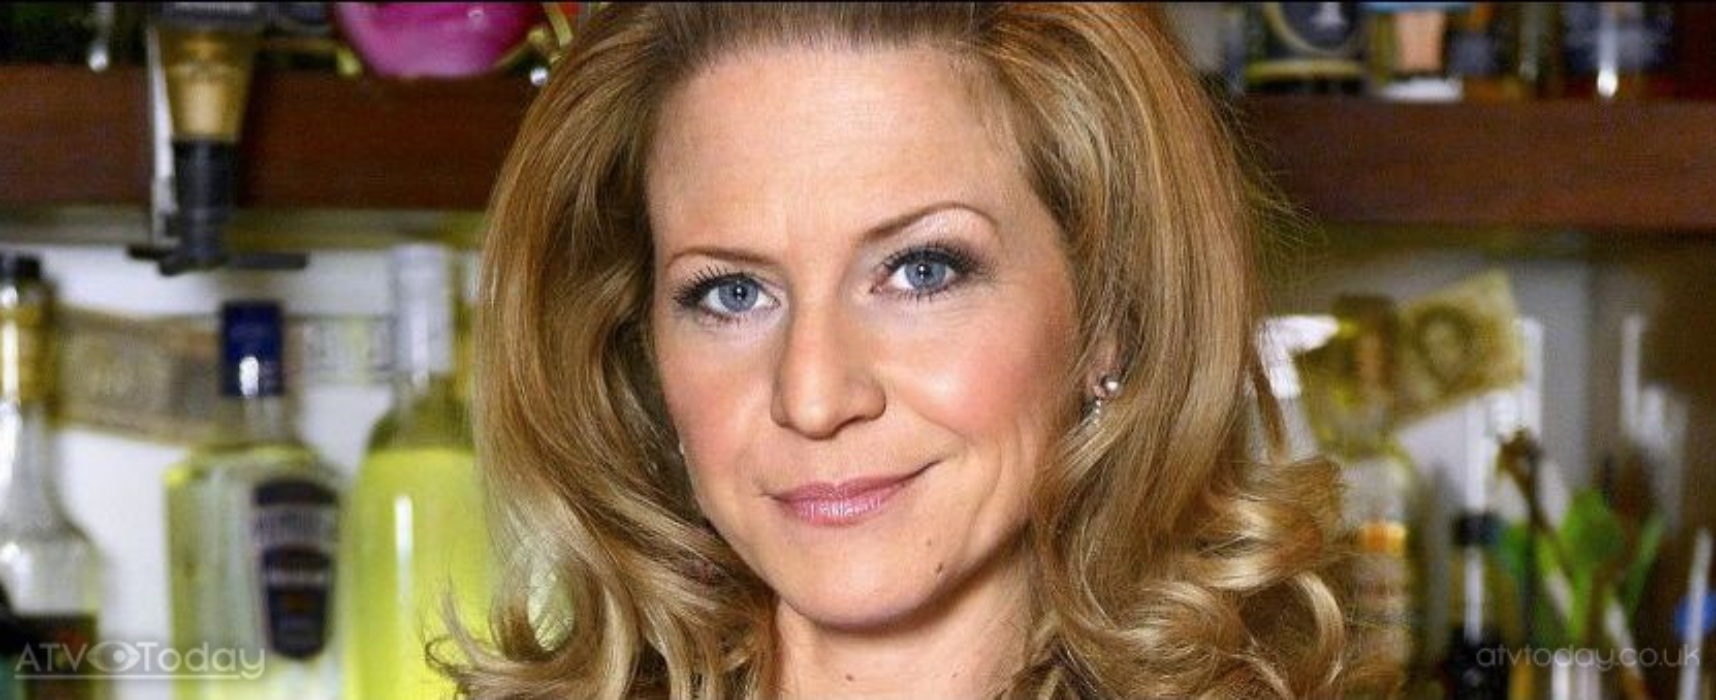 EastEnders to explore alcoholism with Linda Carter